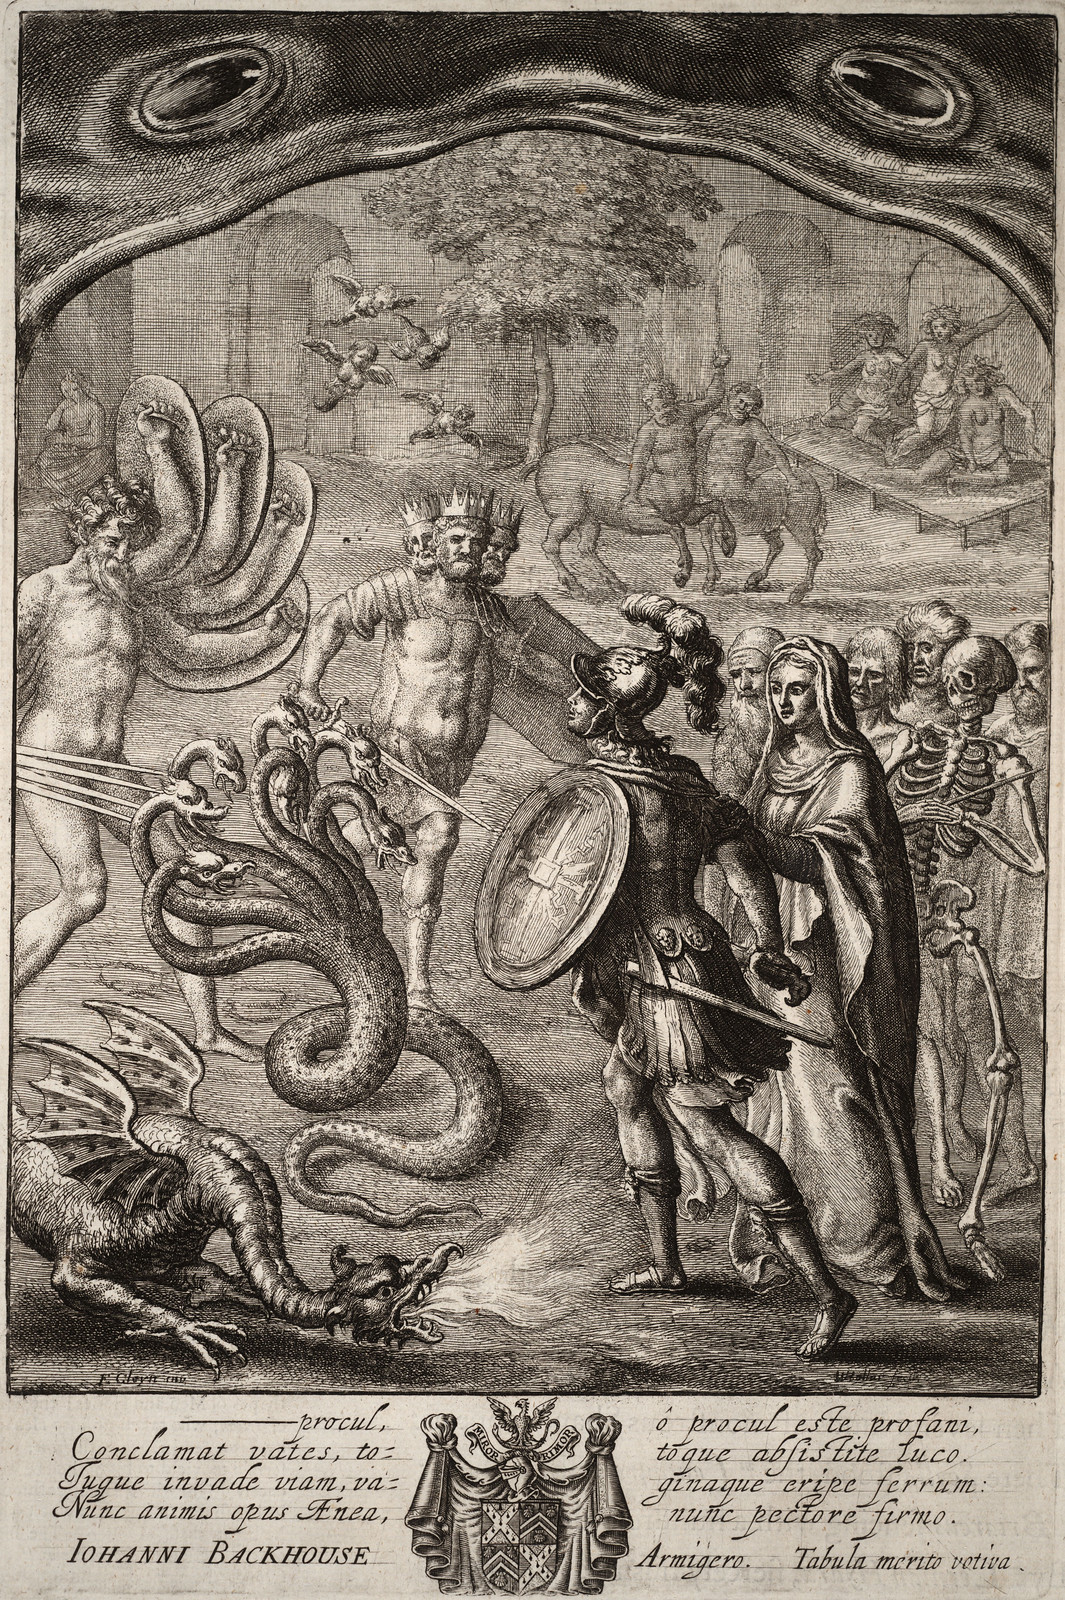 Wenceslaus Hollar - Aeneas in the underworld. (scene from Virgil) 17th century